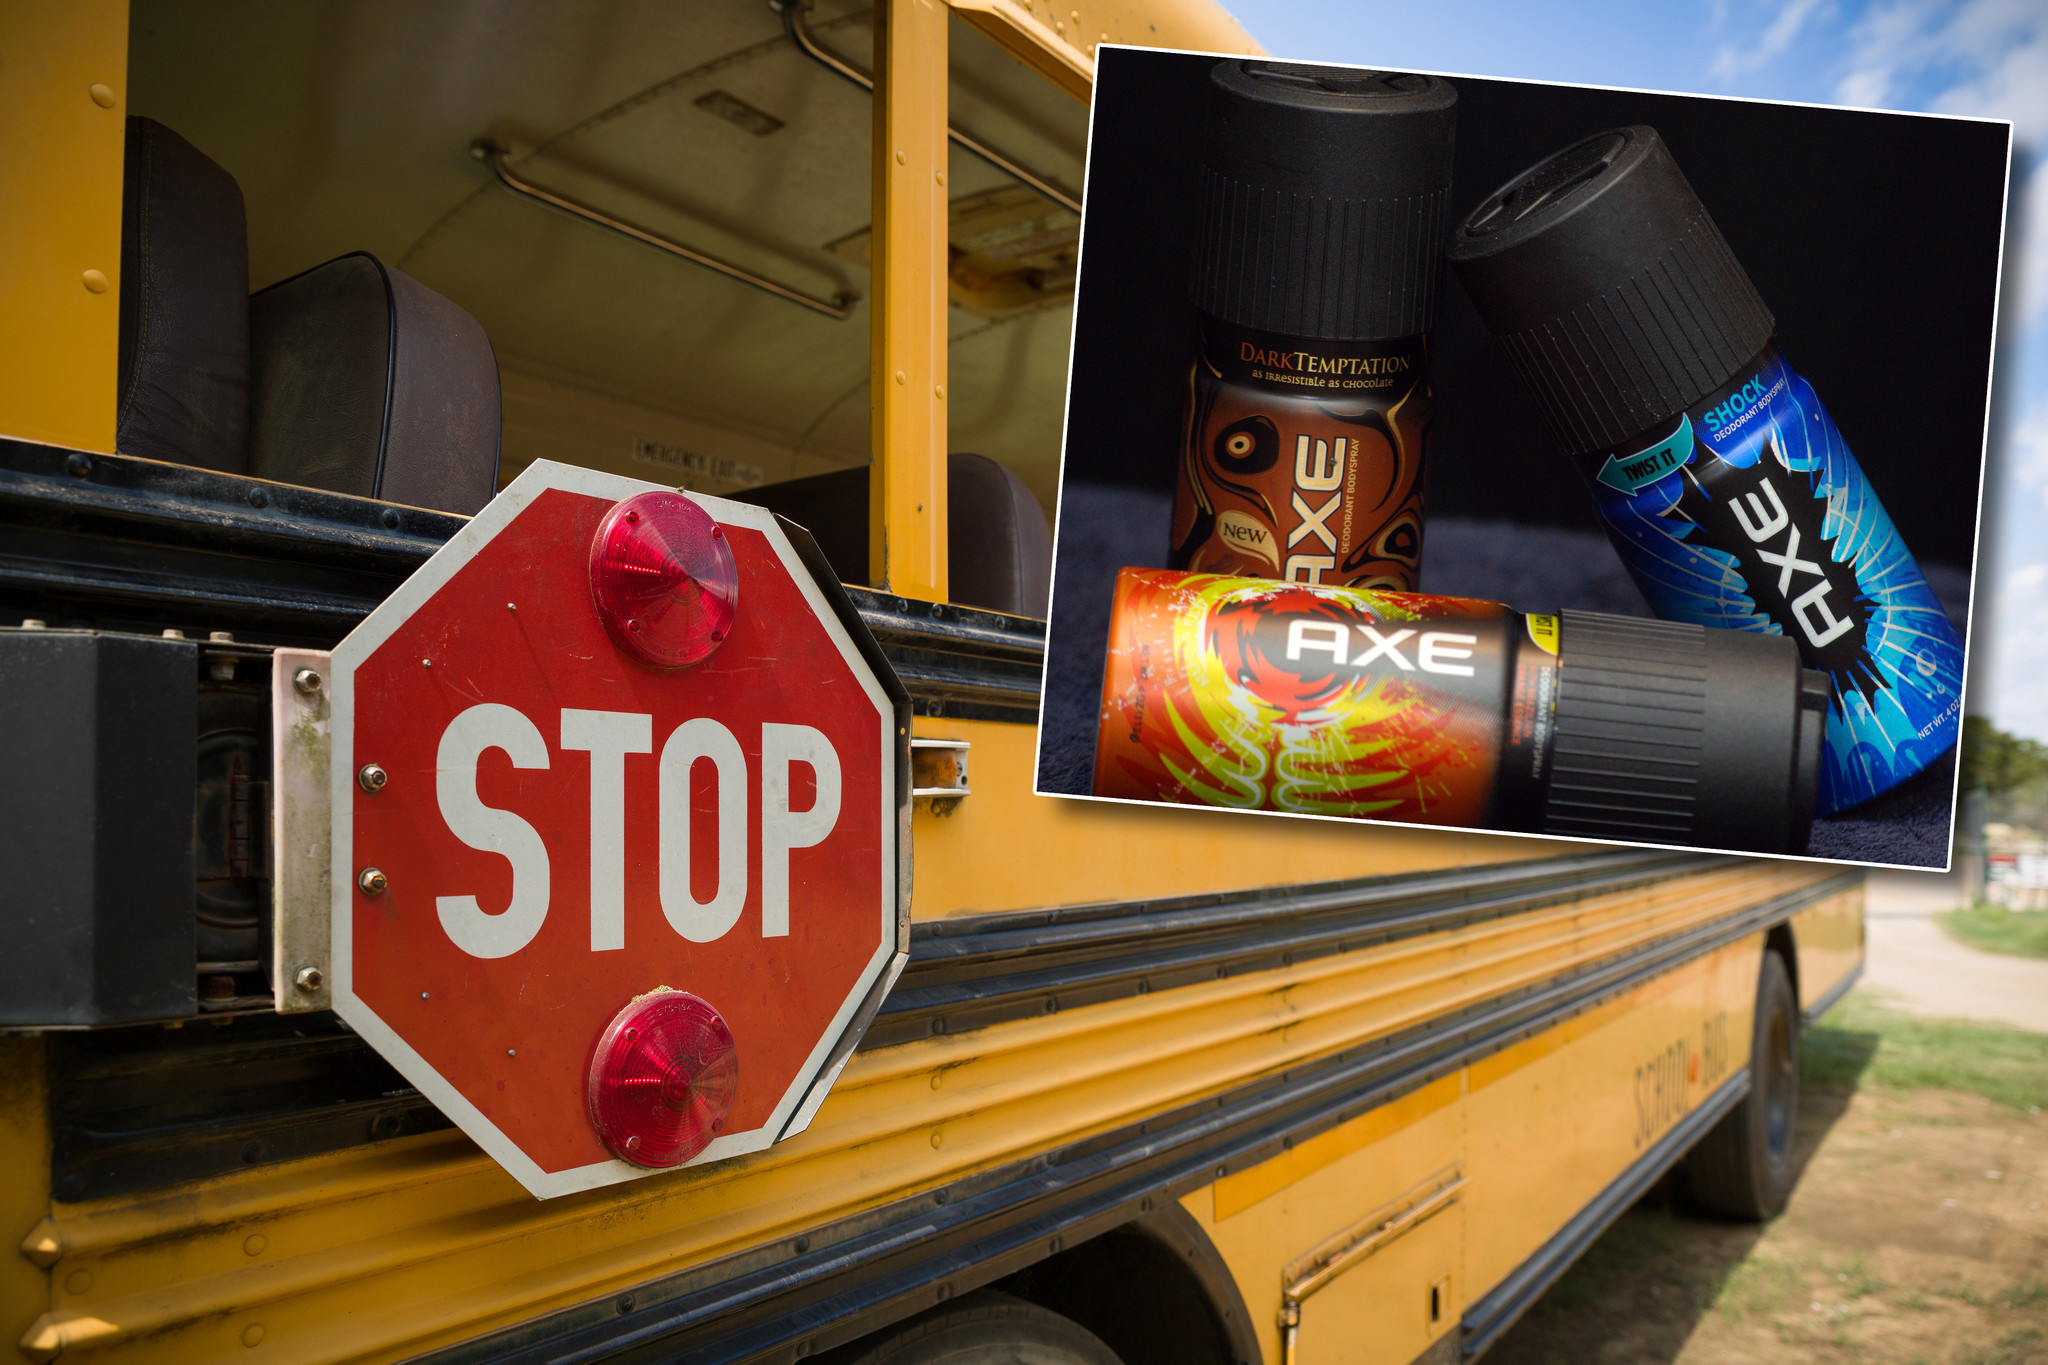 School bus evacuated due to student's copious use of Axe body spray